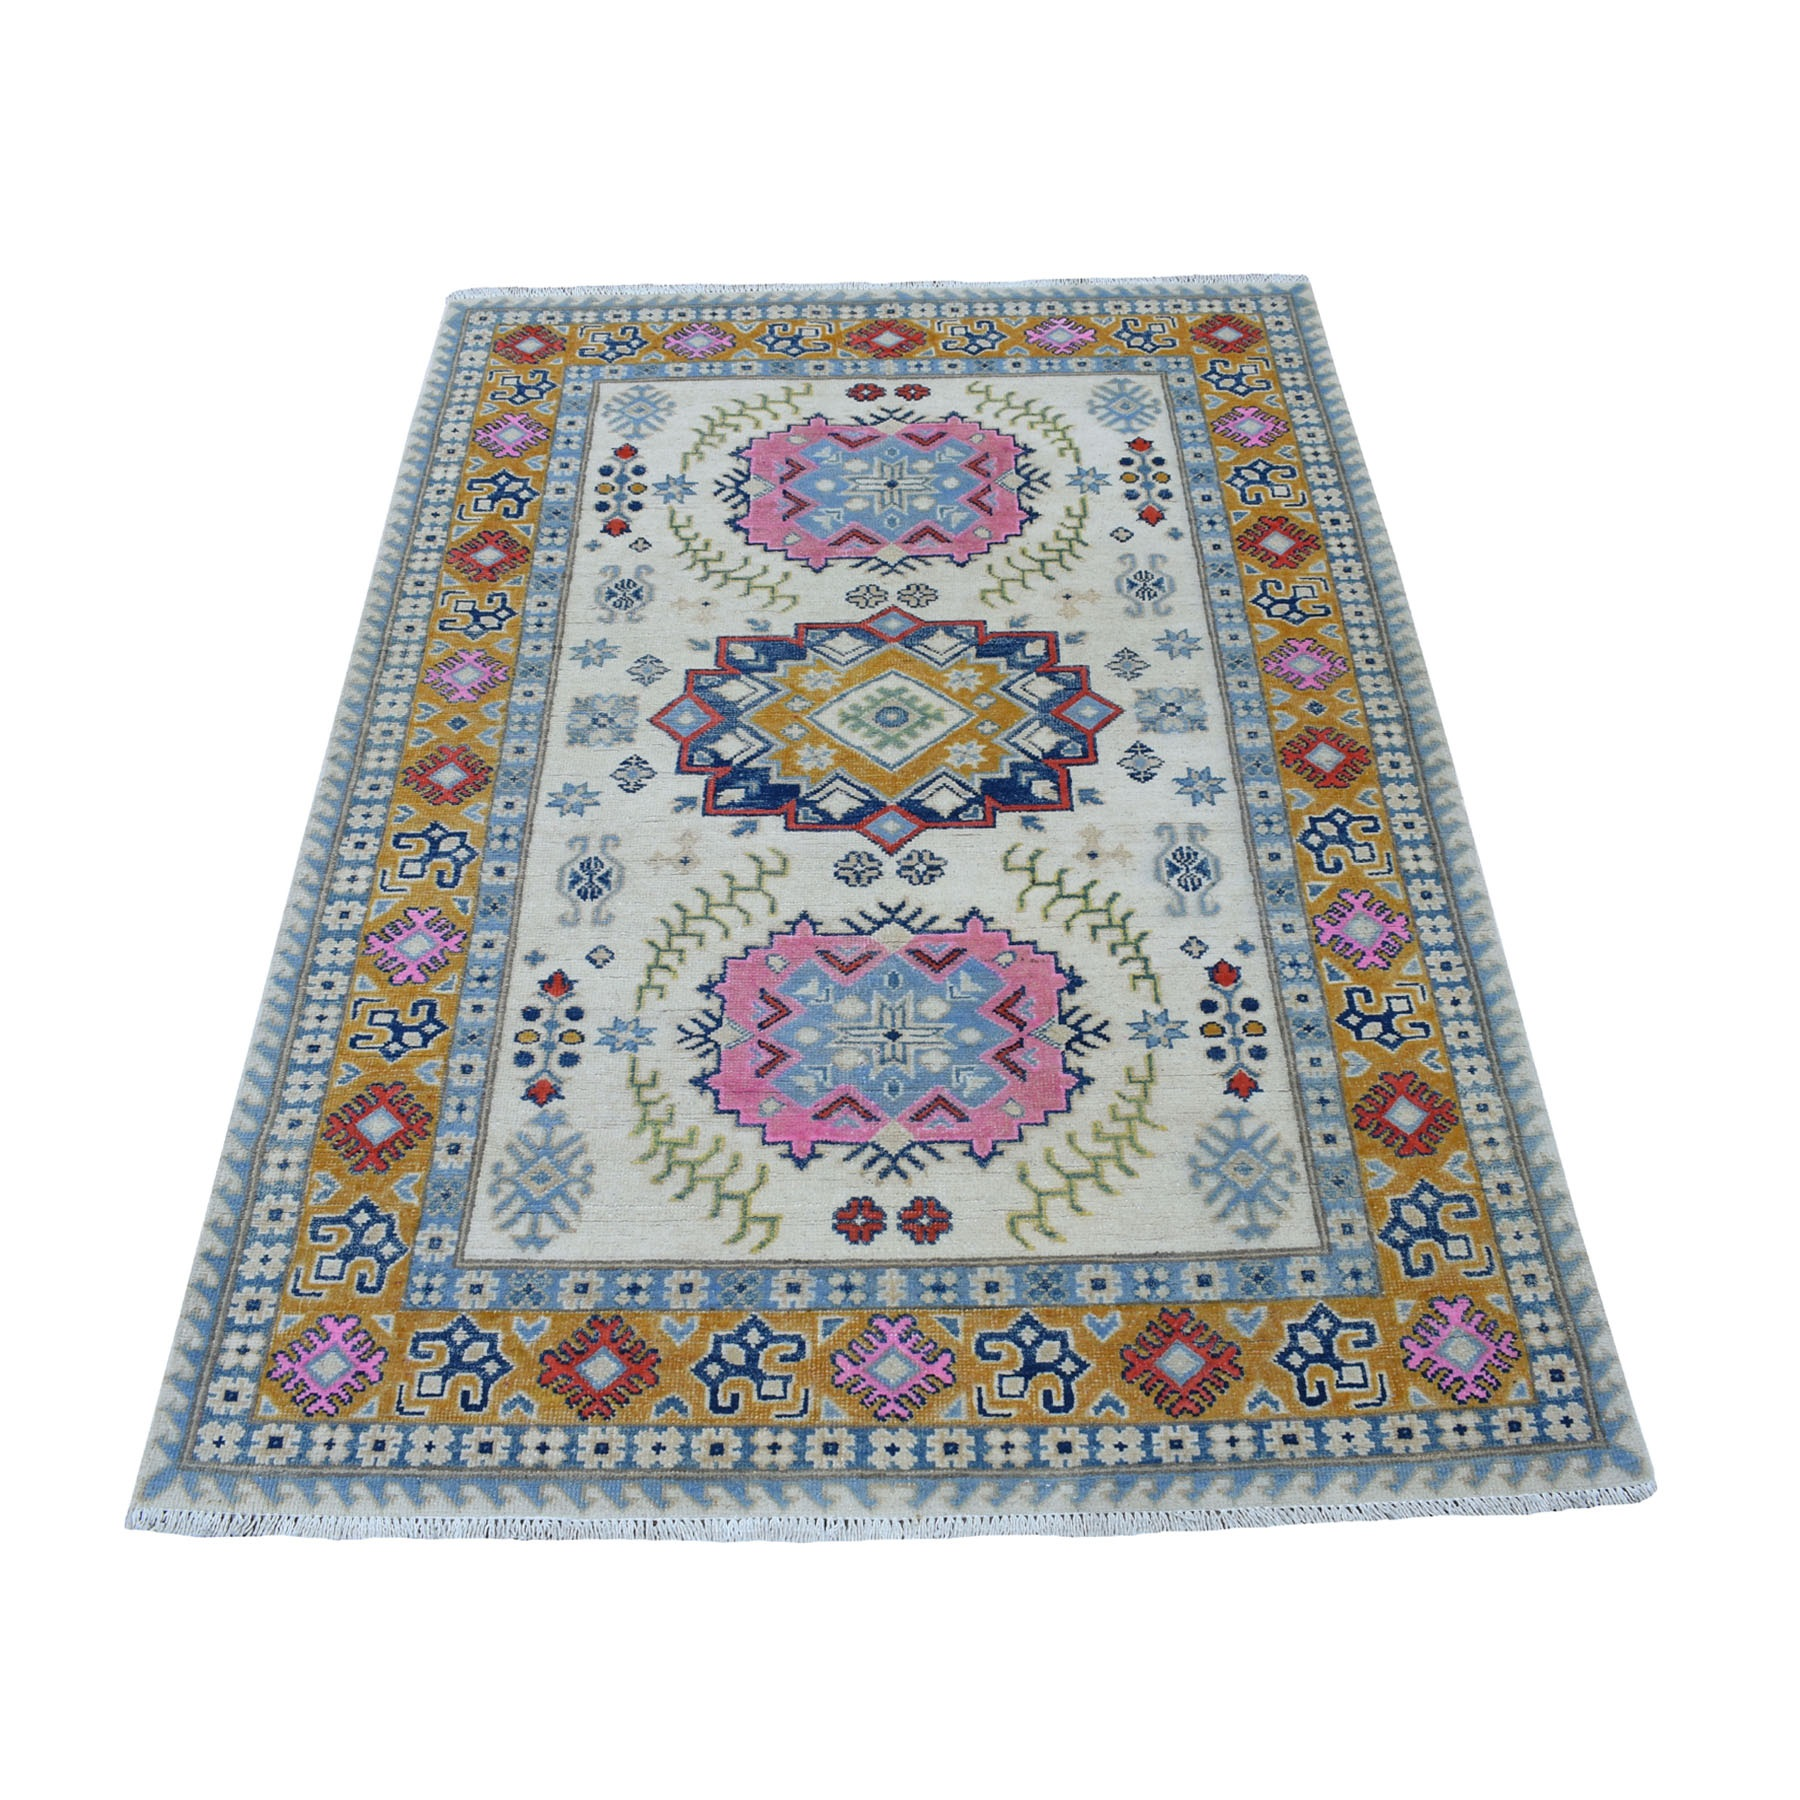 4'X6' Colorful Ivory Fusion Kazak Pure Wool Hand Knotted Oriental Rug moaec79c